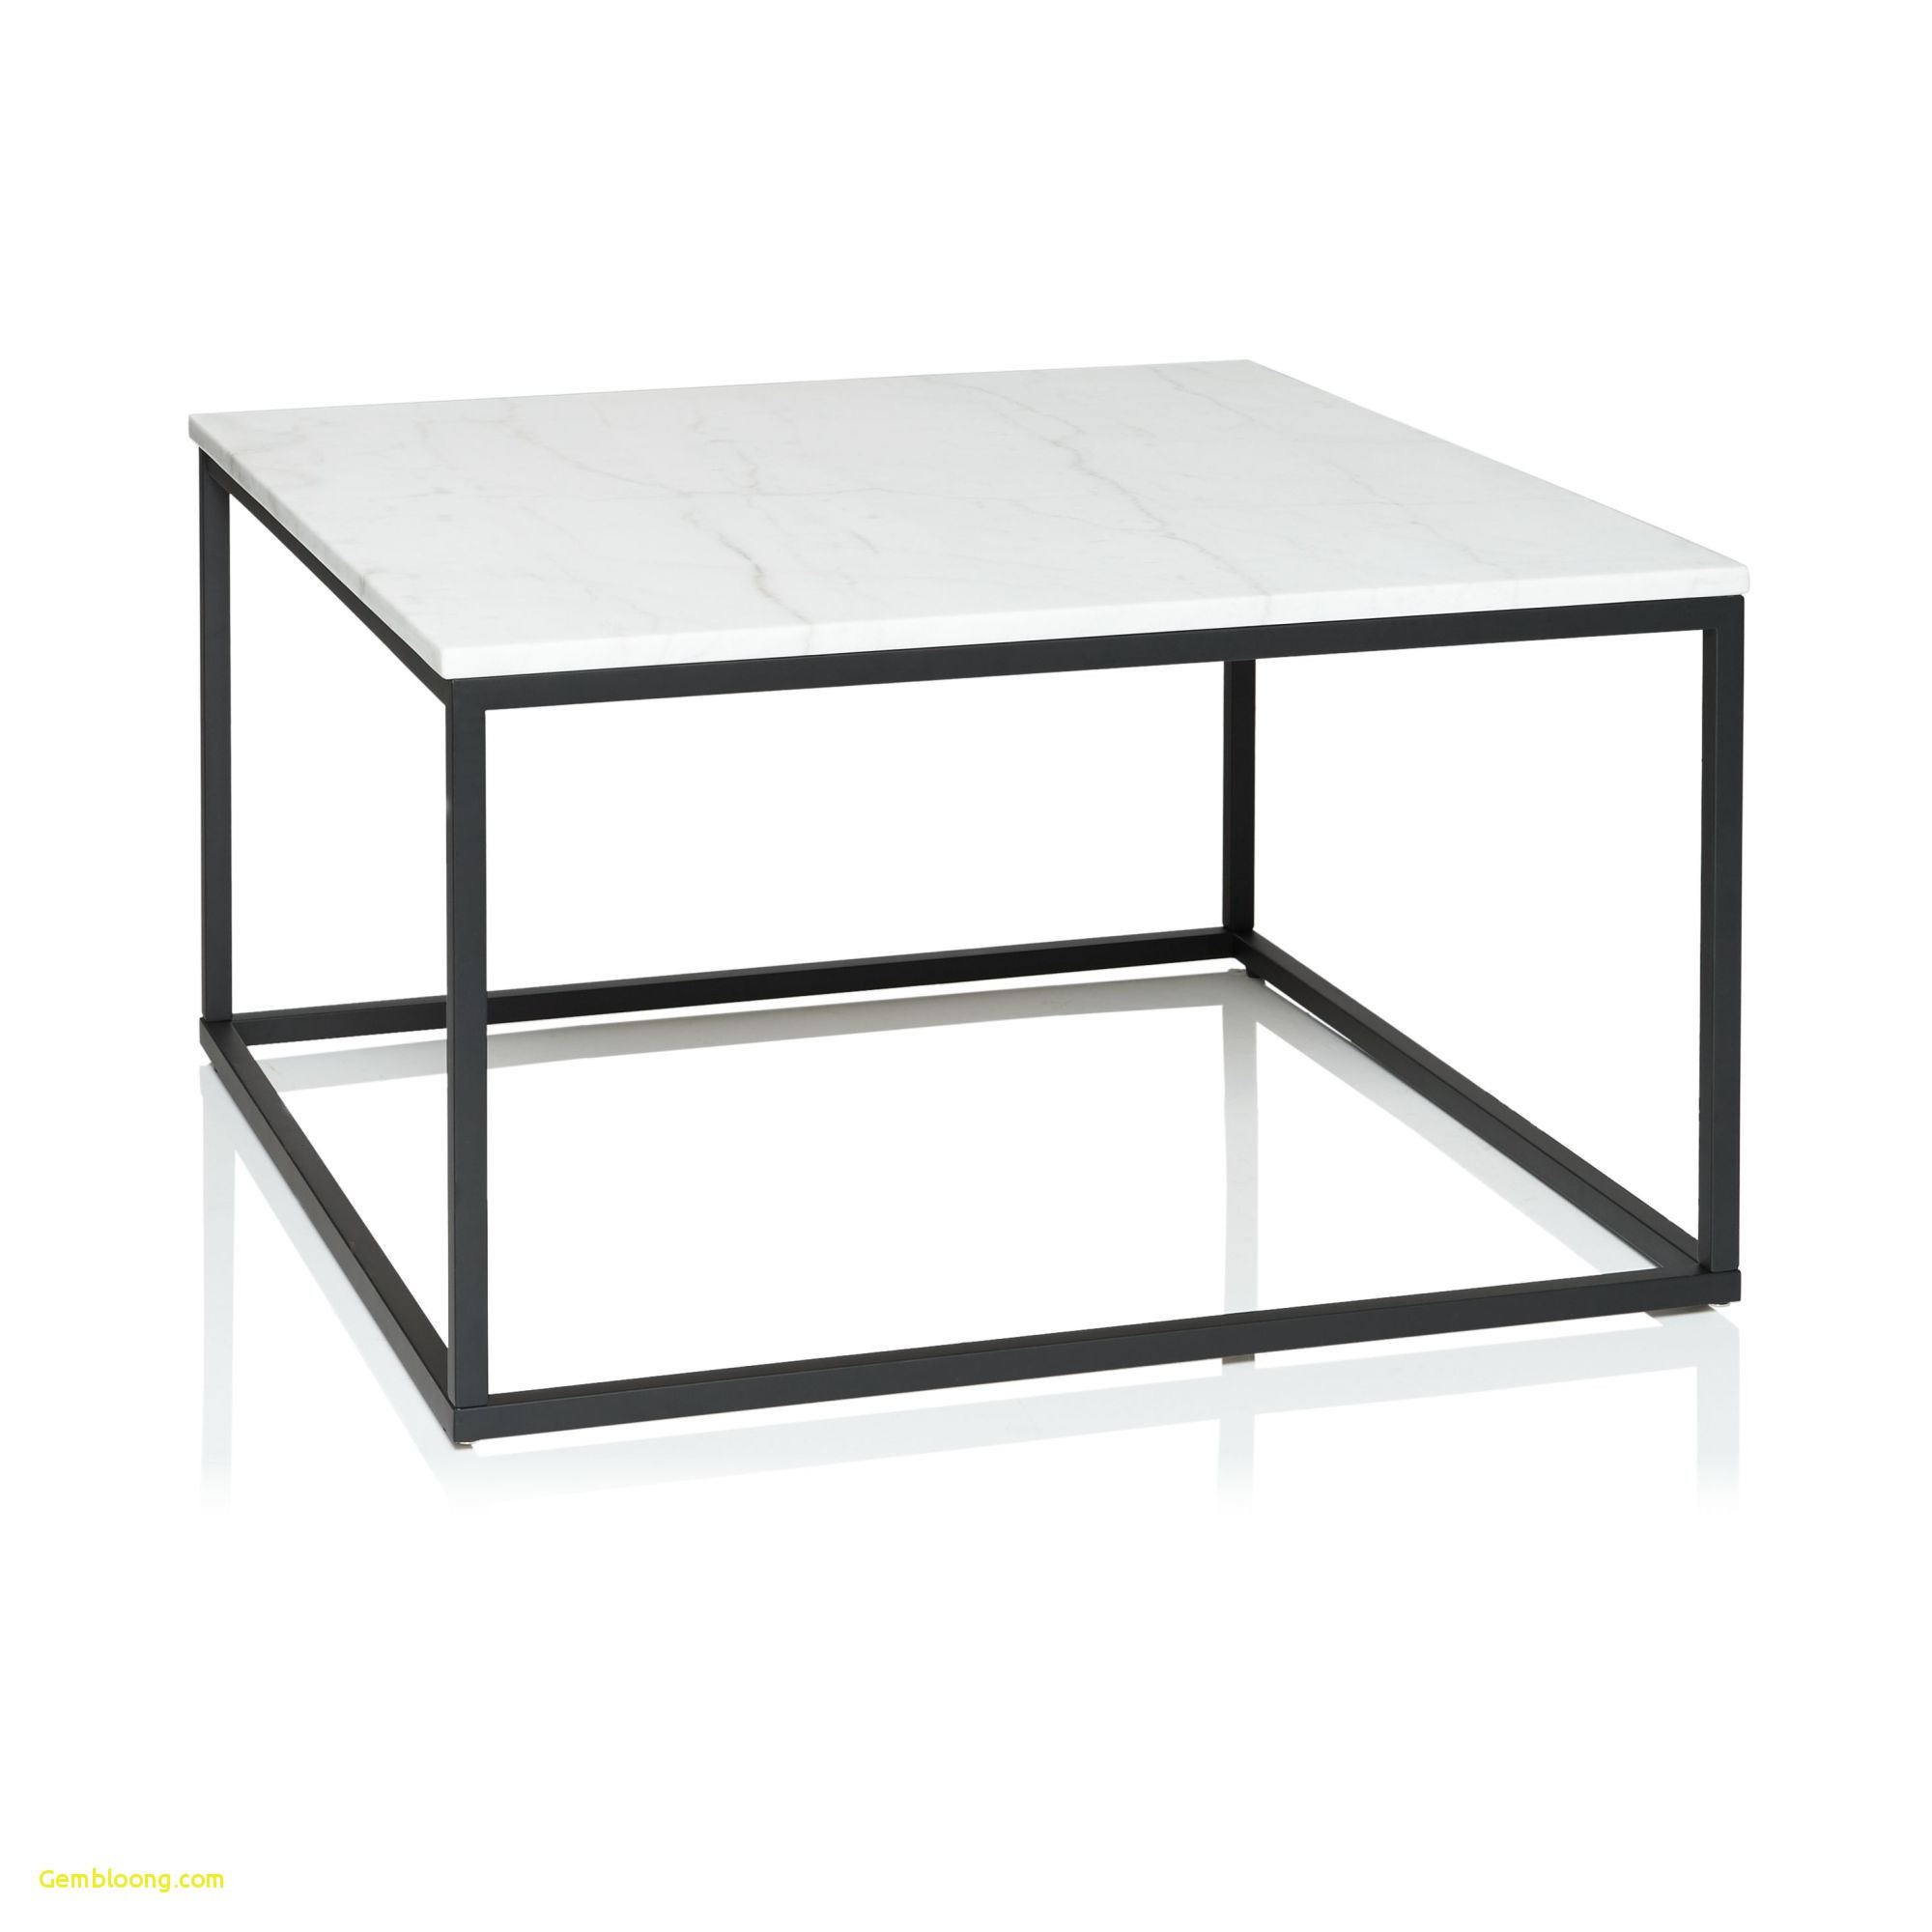 square black glass vase of square coffee table unique pallet home decor ideas best sto od pertaining to related post